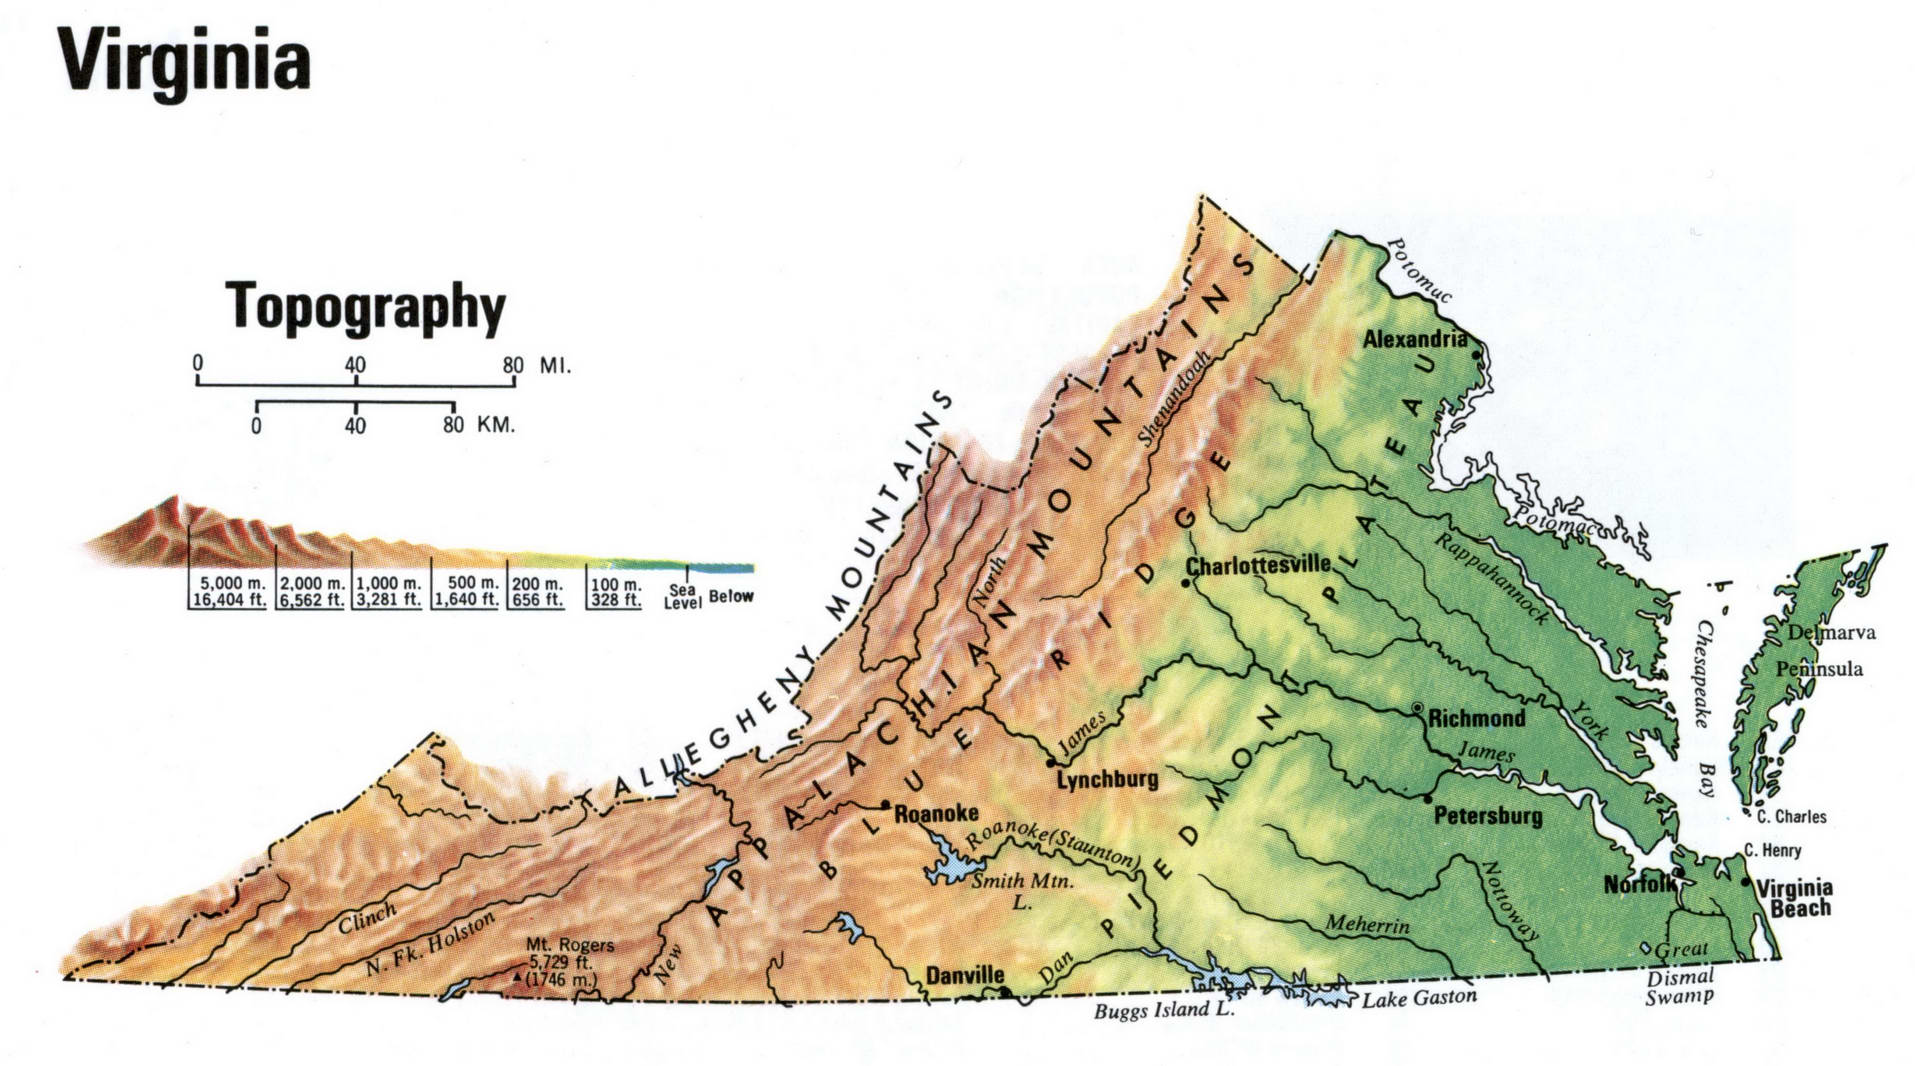 Virginia state topographic map